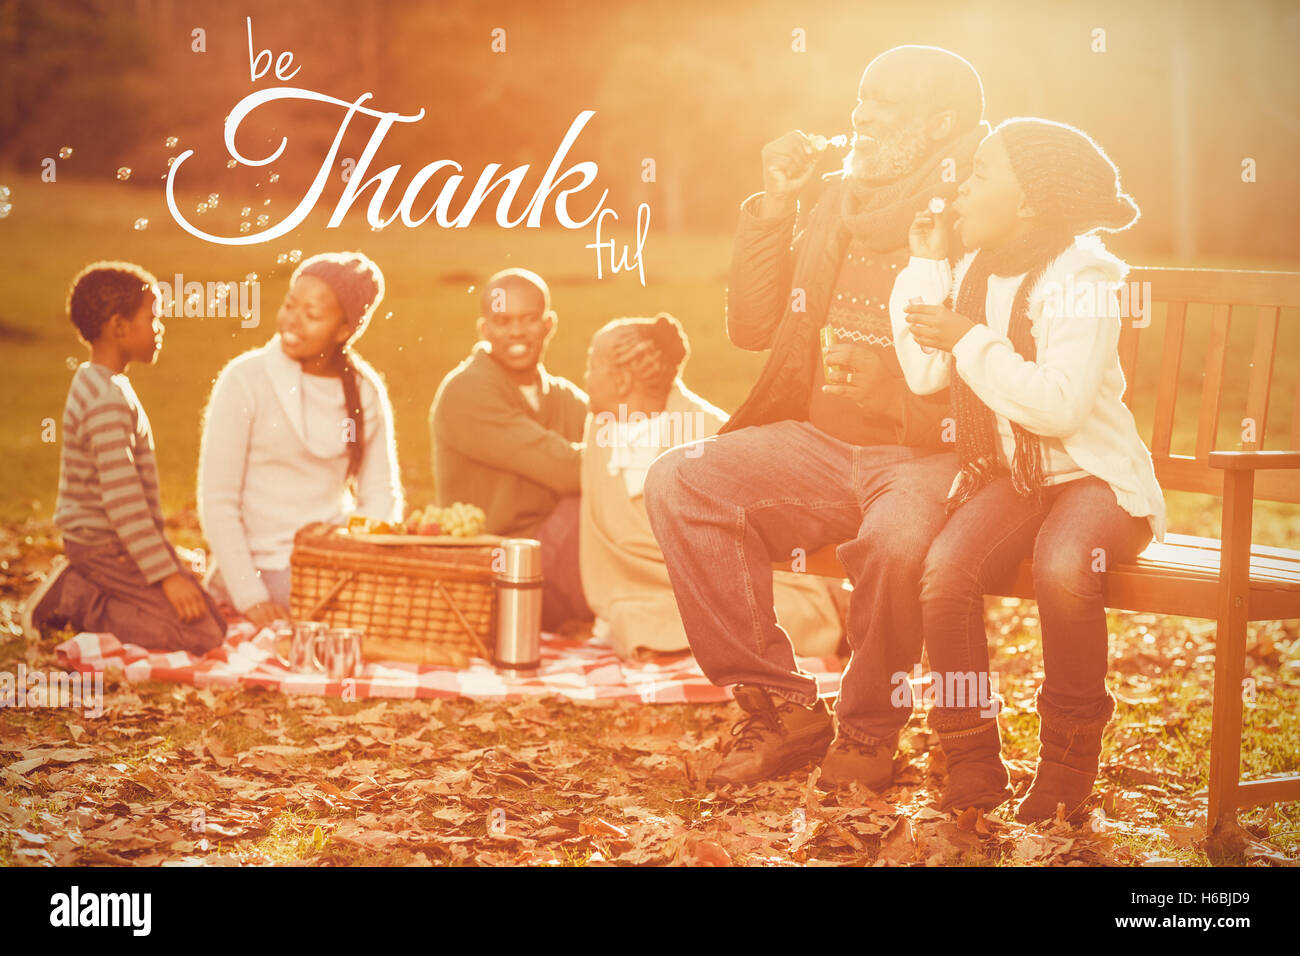 Composite image of digital image of happy thanksgiving day text greeting - Stock Image